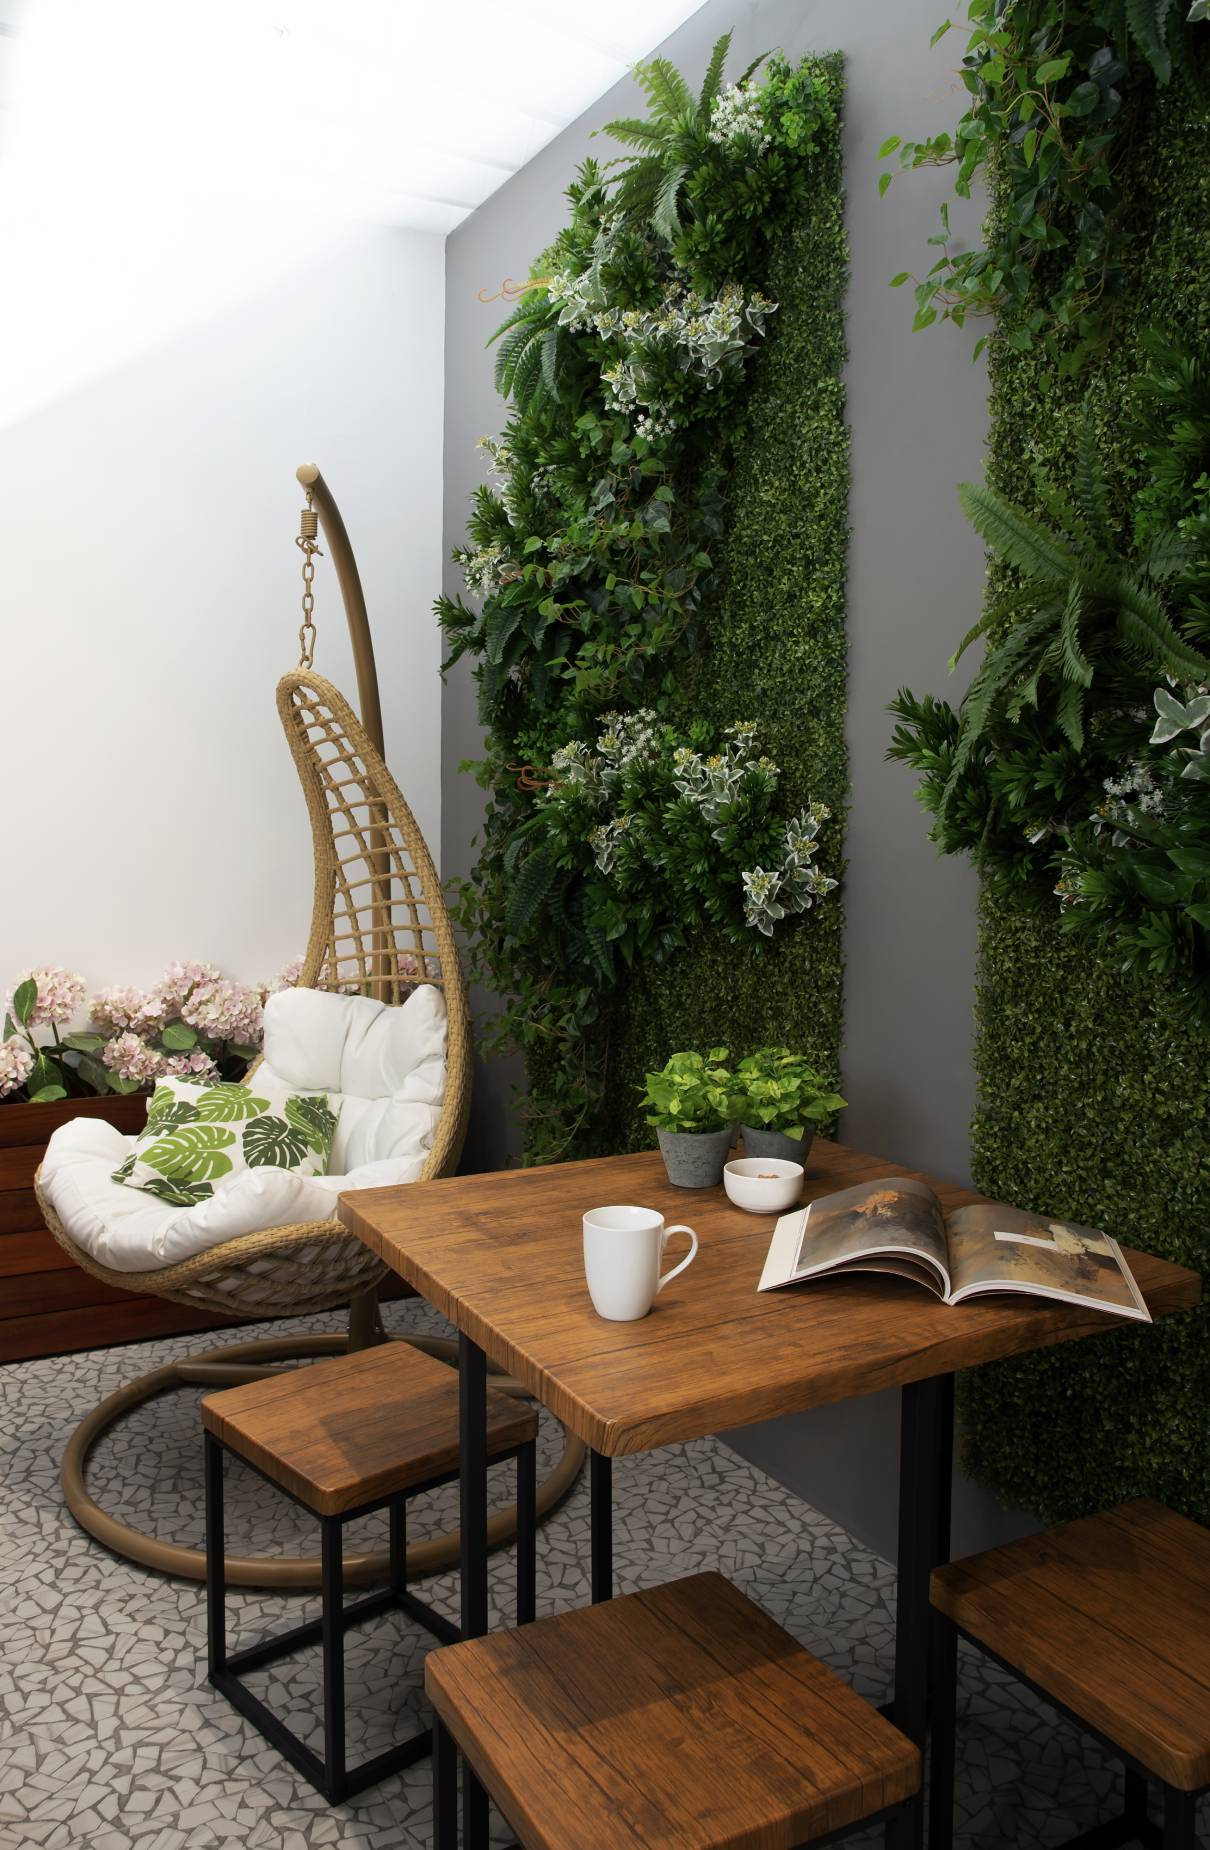 Looking for inspiring ideas for your balcony?